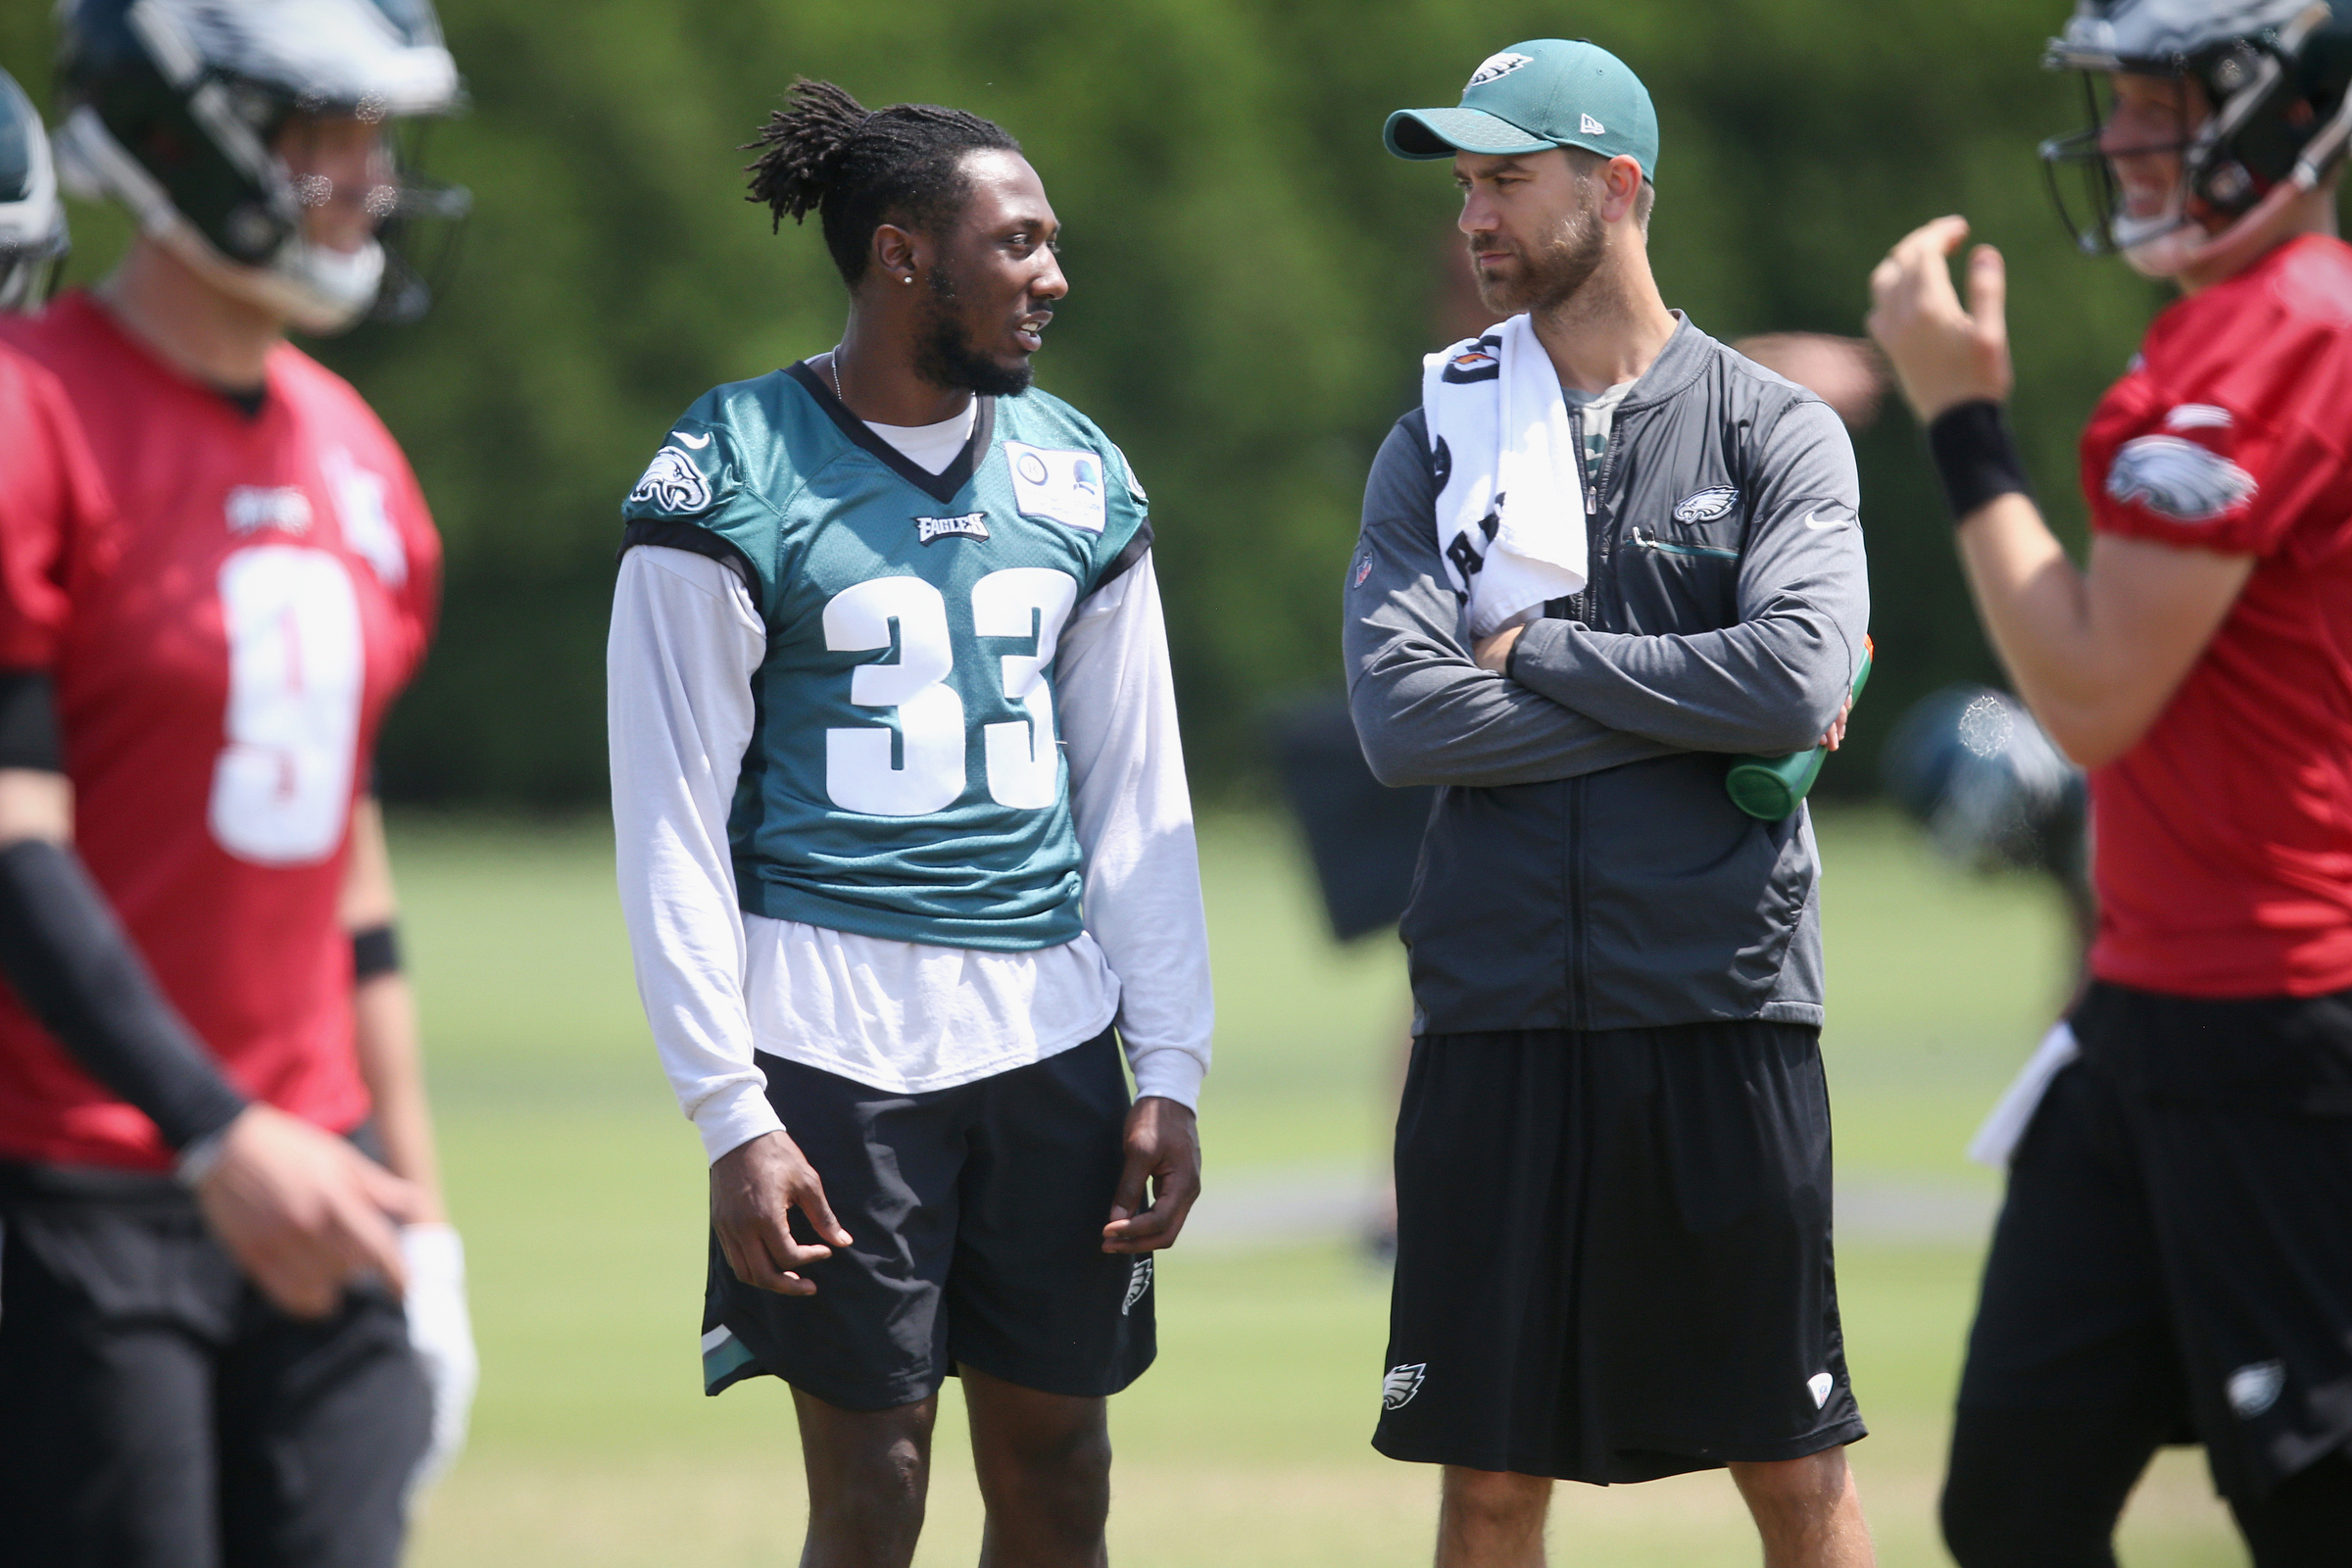 Josh Adams is one of four running backs, along with Wendell Smallwood, Matt Jones and Donnel Pumphrey, who are trying to make the Eagles roster behind the starters.